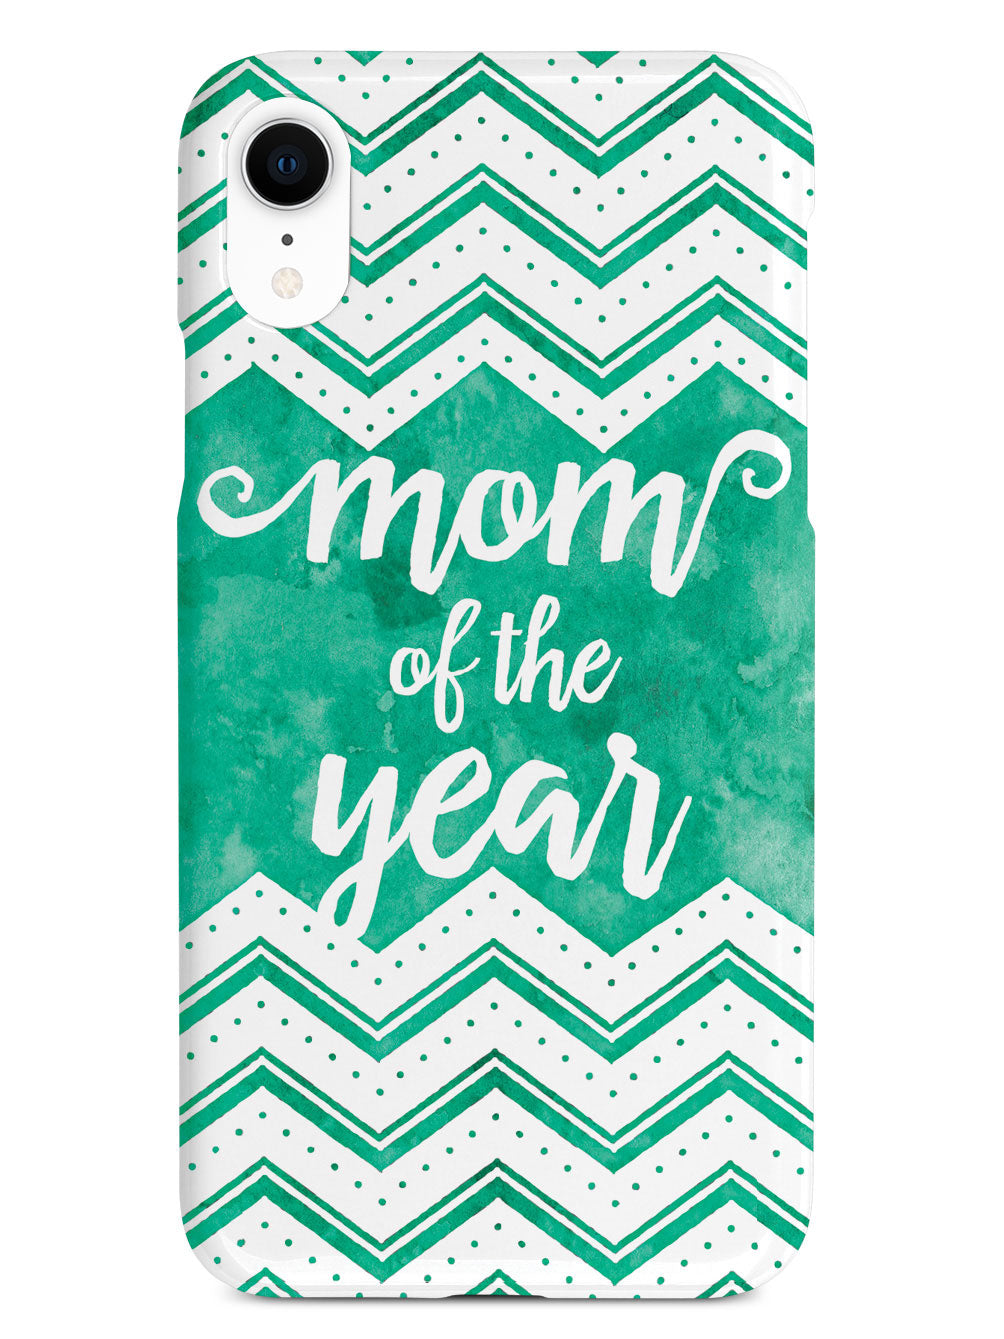 Mom of the Year - Green Case